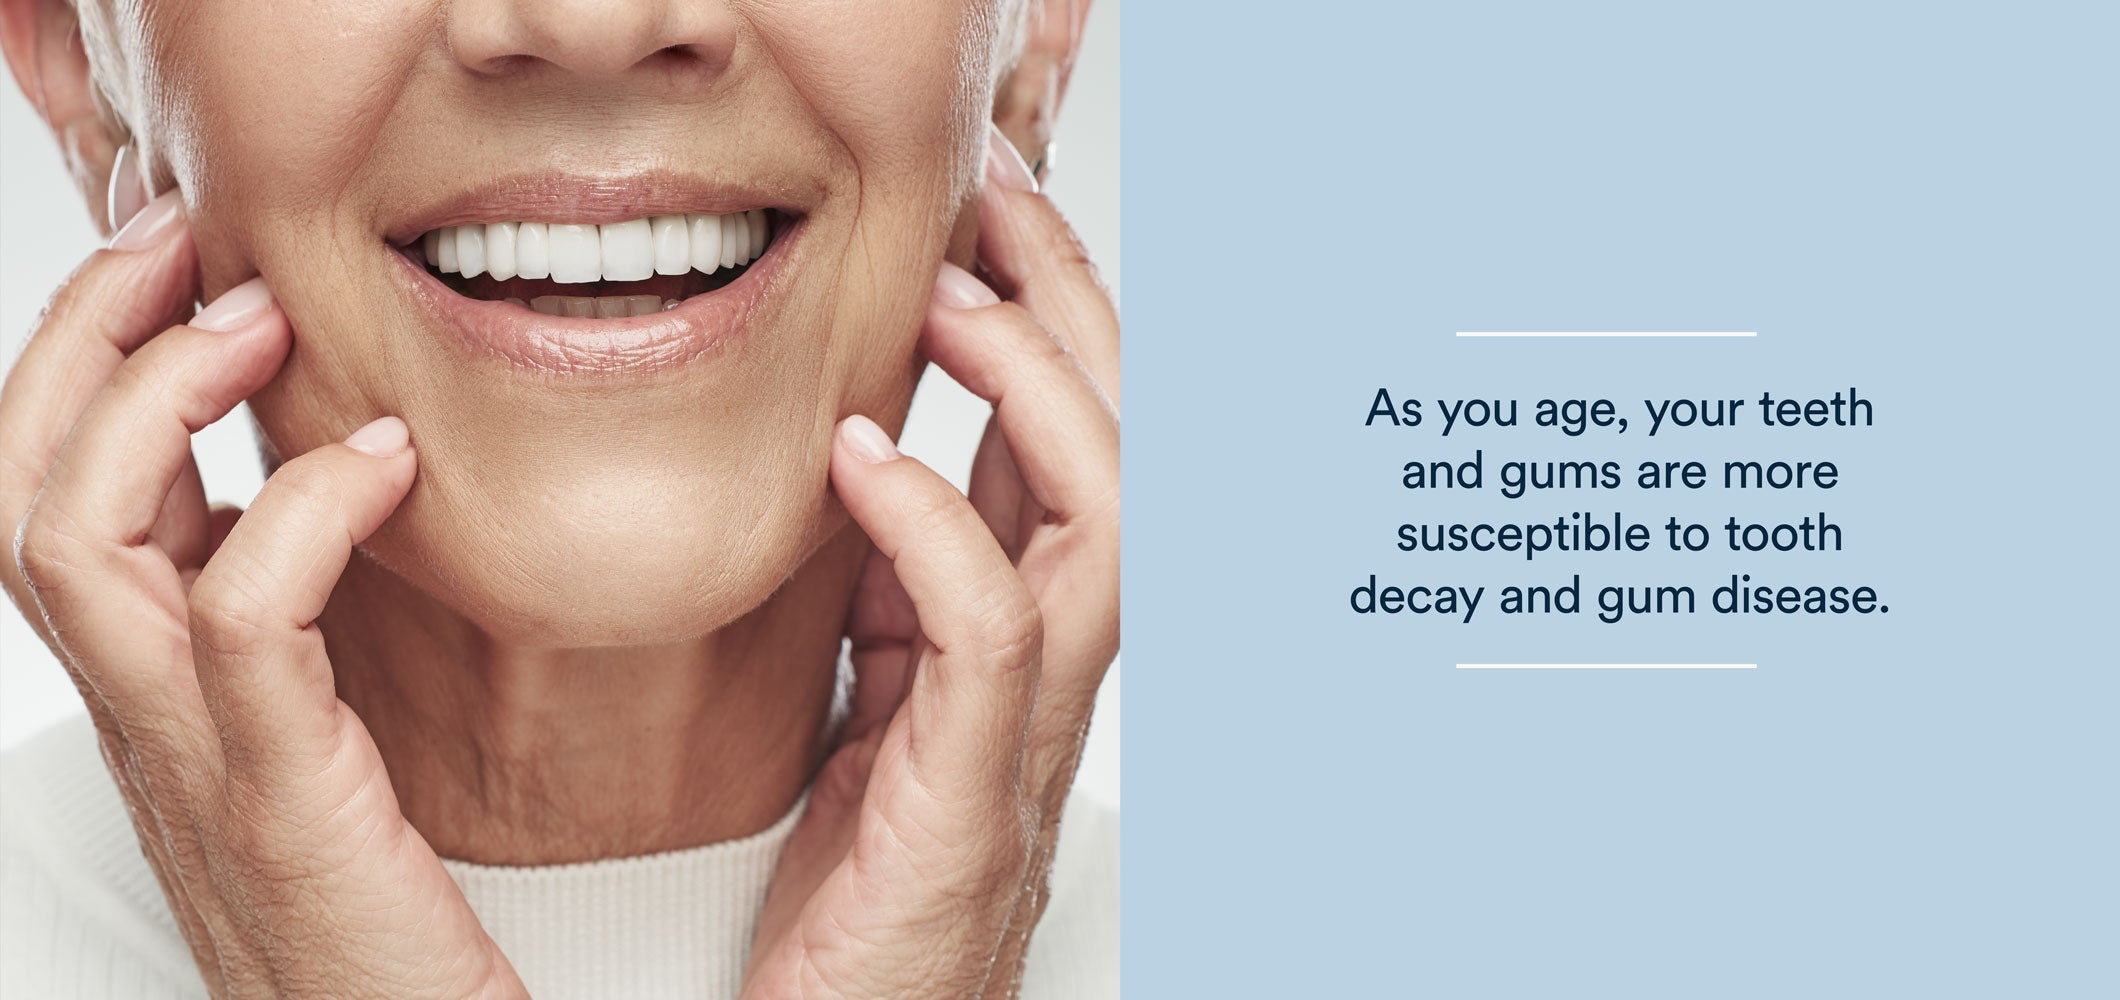 as you age, your teeth and gums are more susceptible to tooth decay and gum disease.